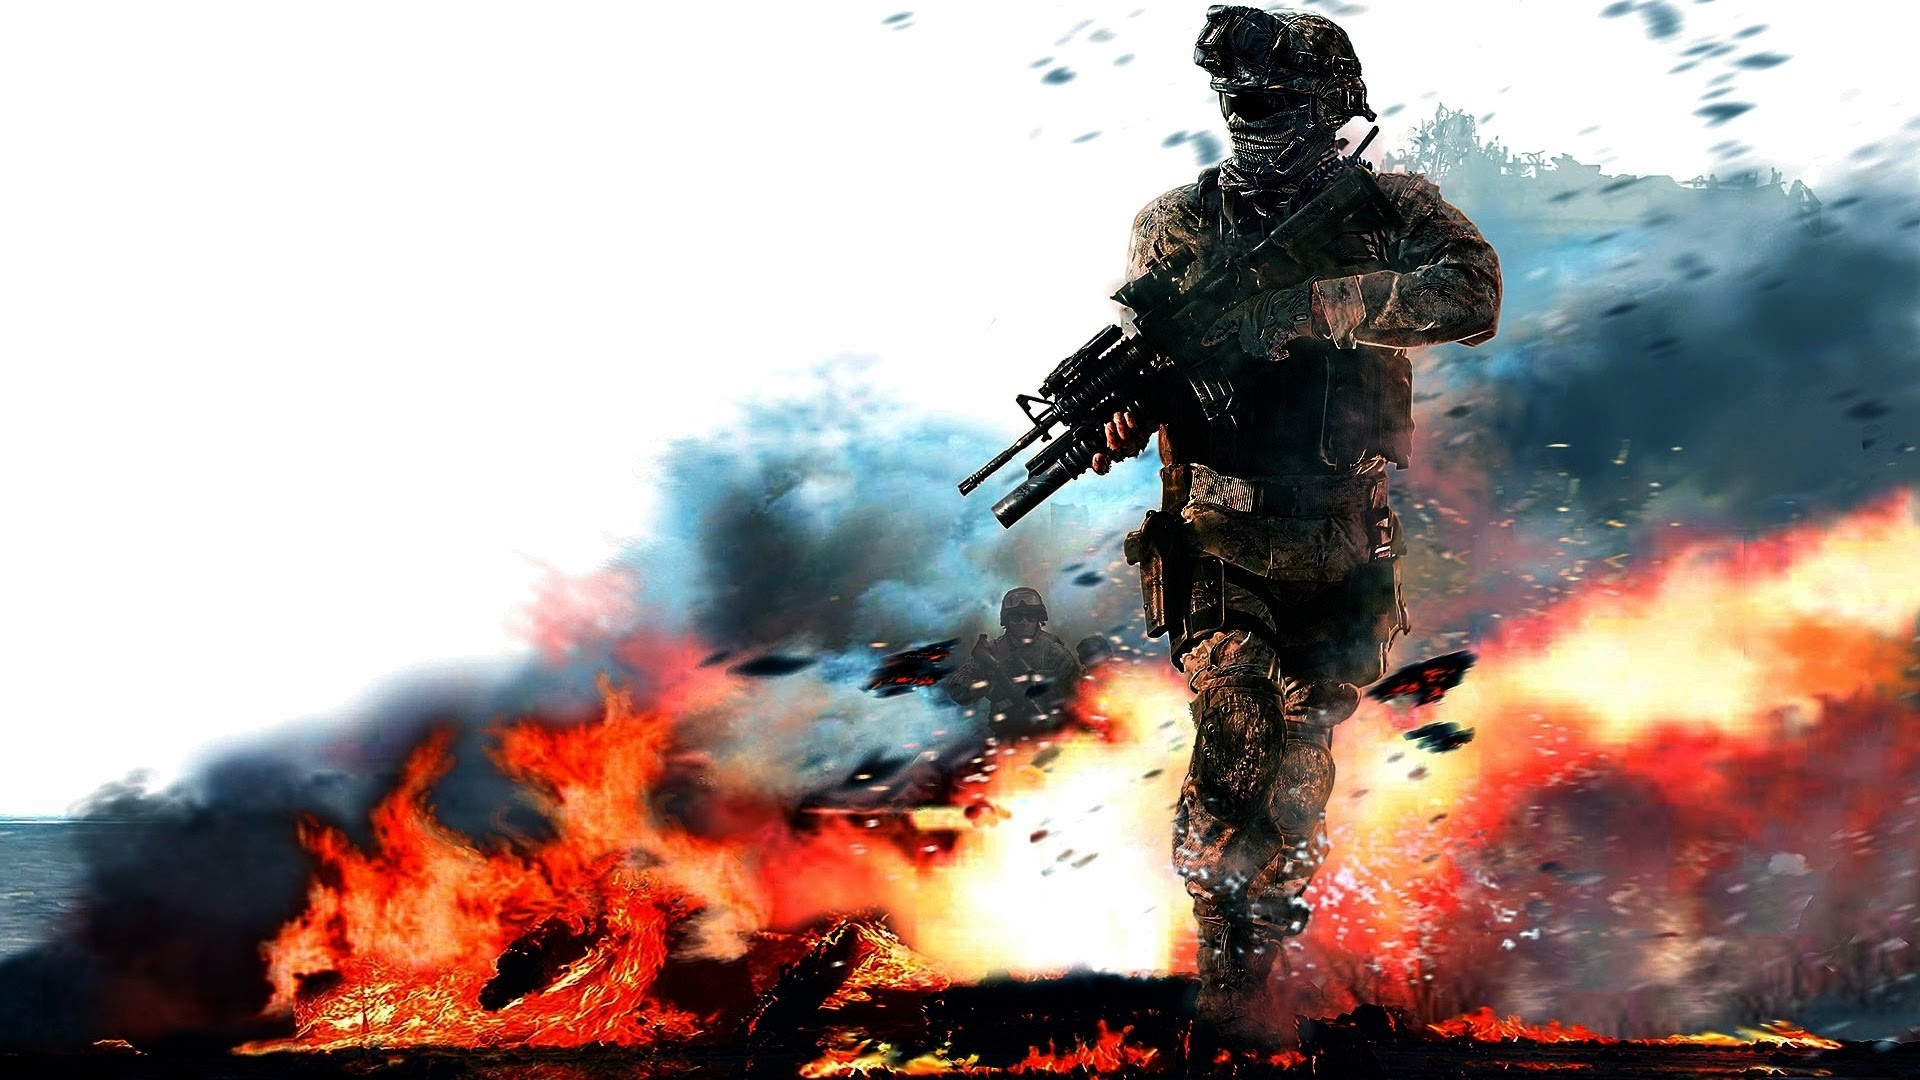 HD Best Call of Duty Video Game Wallpapers Full Size .